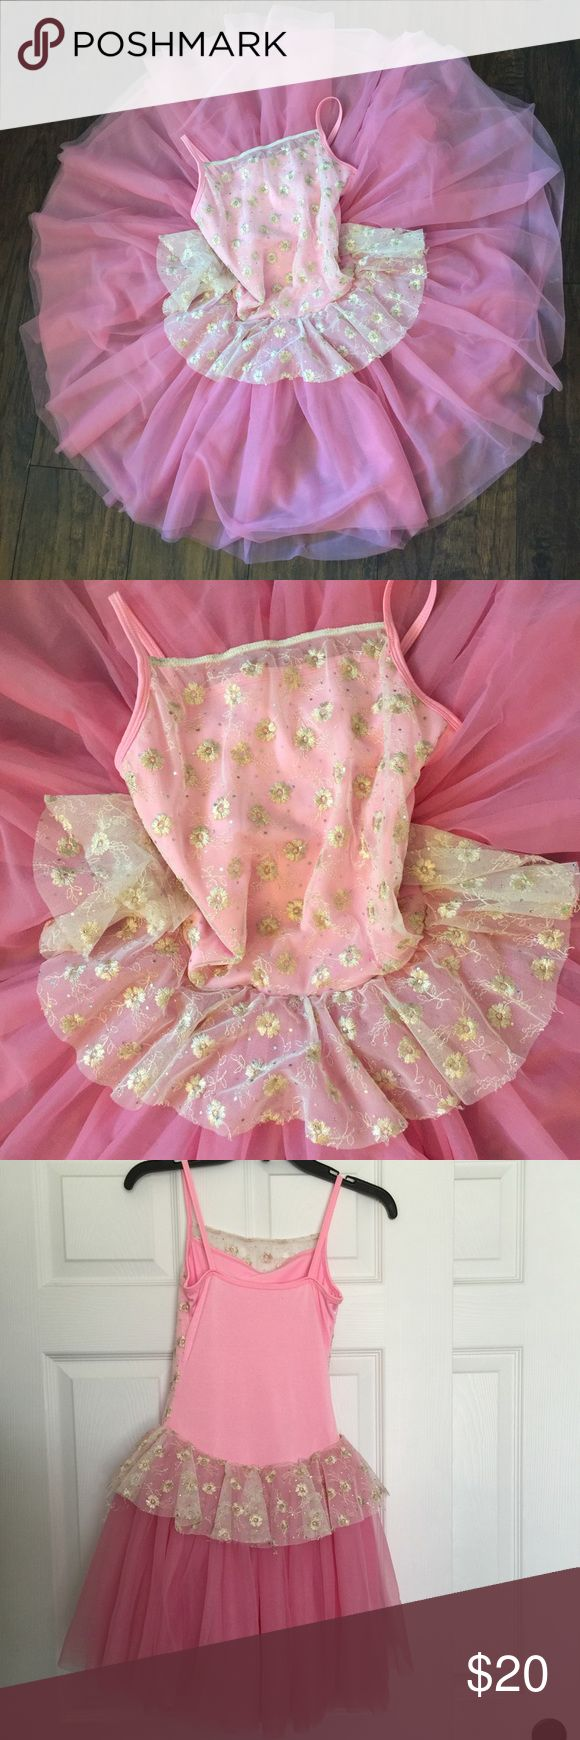 Curtain call ballet recital dress So pretty in pink! Body - 80% nylon, 20% spandex. Front overlay - 100% polyester. Skirt - 100% nylon. Measures from top of strap to bottom of skirt 32 1/2 in. From top of strap to waist line 14 1/2 in. Underarm to underarm is 12 1/2 in. Waist is 13 in. Measurements were taken with dress laying flat. Curtain Call Other